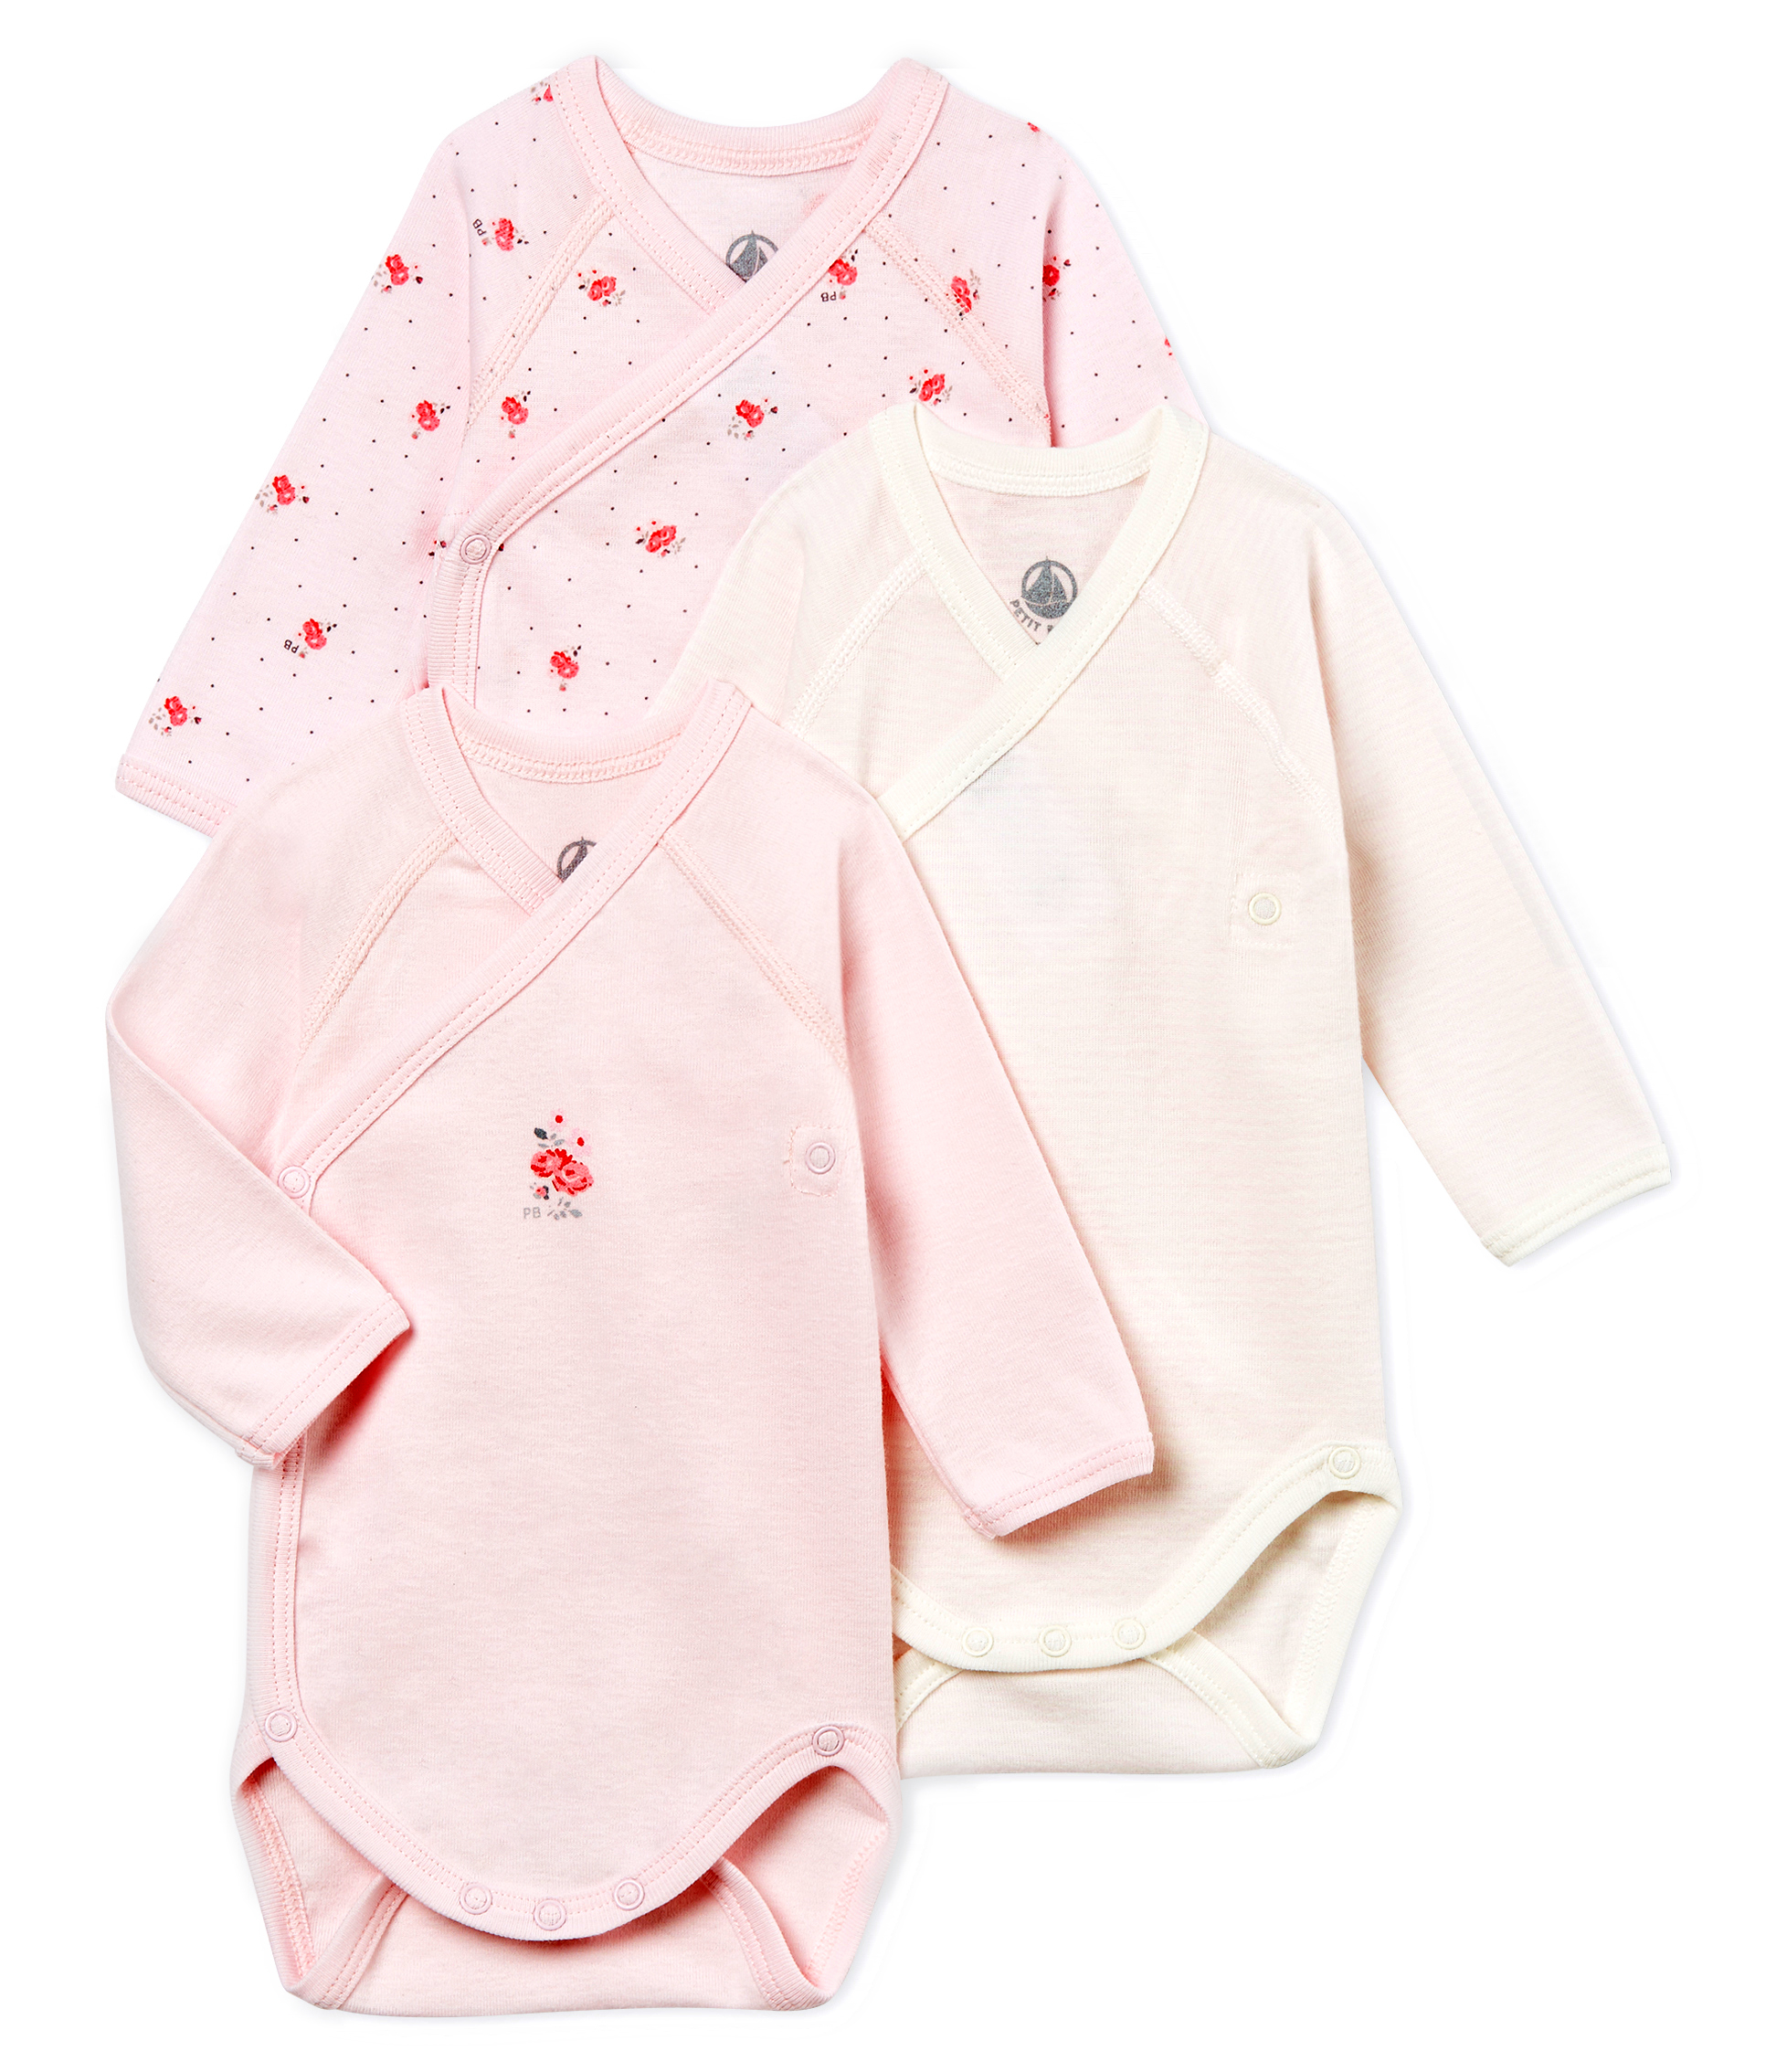 7da3b5c9a Unisex newborn baby long-sleeved bodysuit - 3-piece set | Petit Bateau